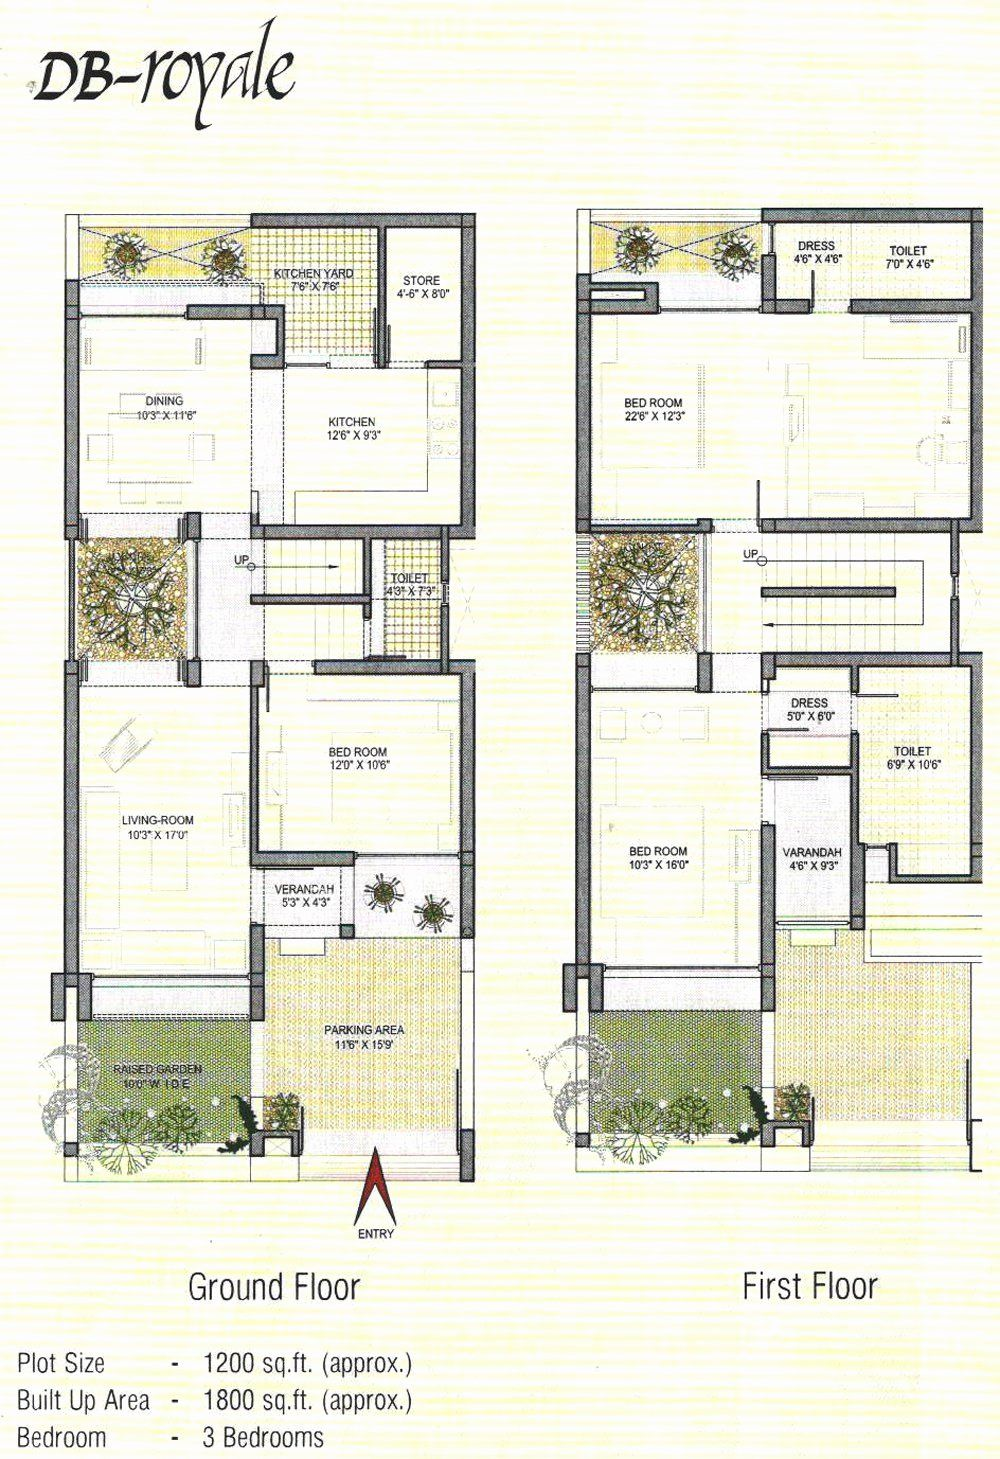 200 000 House Plans Lovely Square Foot House Plans Bedrooms With Basement Garage Top In 2020 Indian House Plans Duplex House Plans Modern House Plans